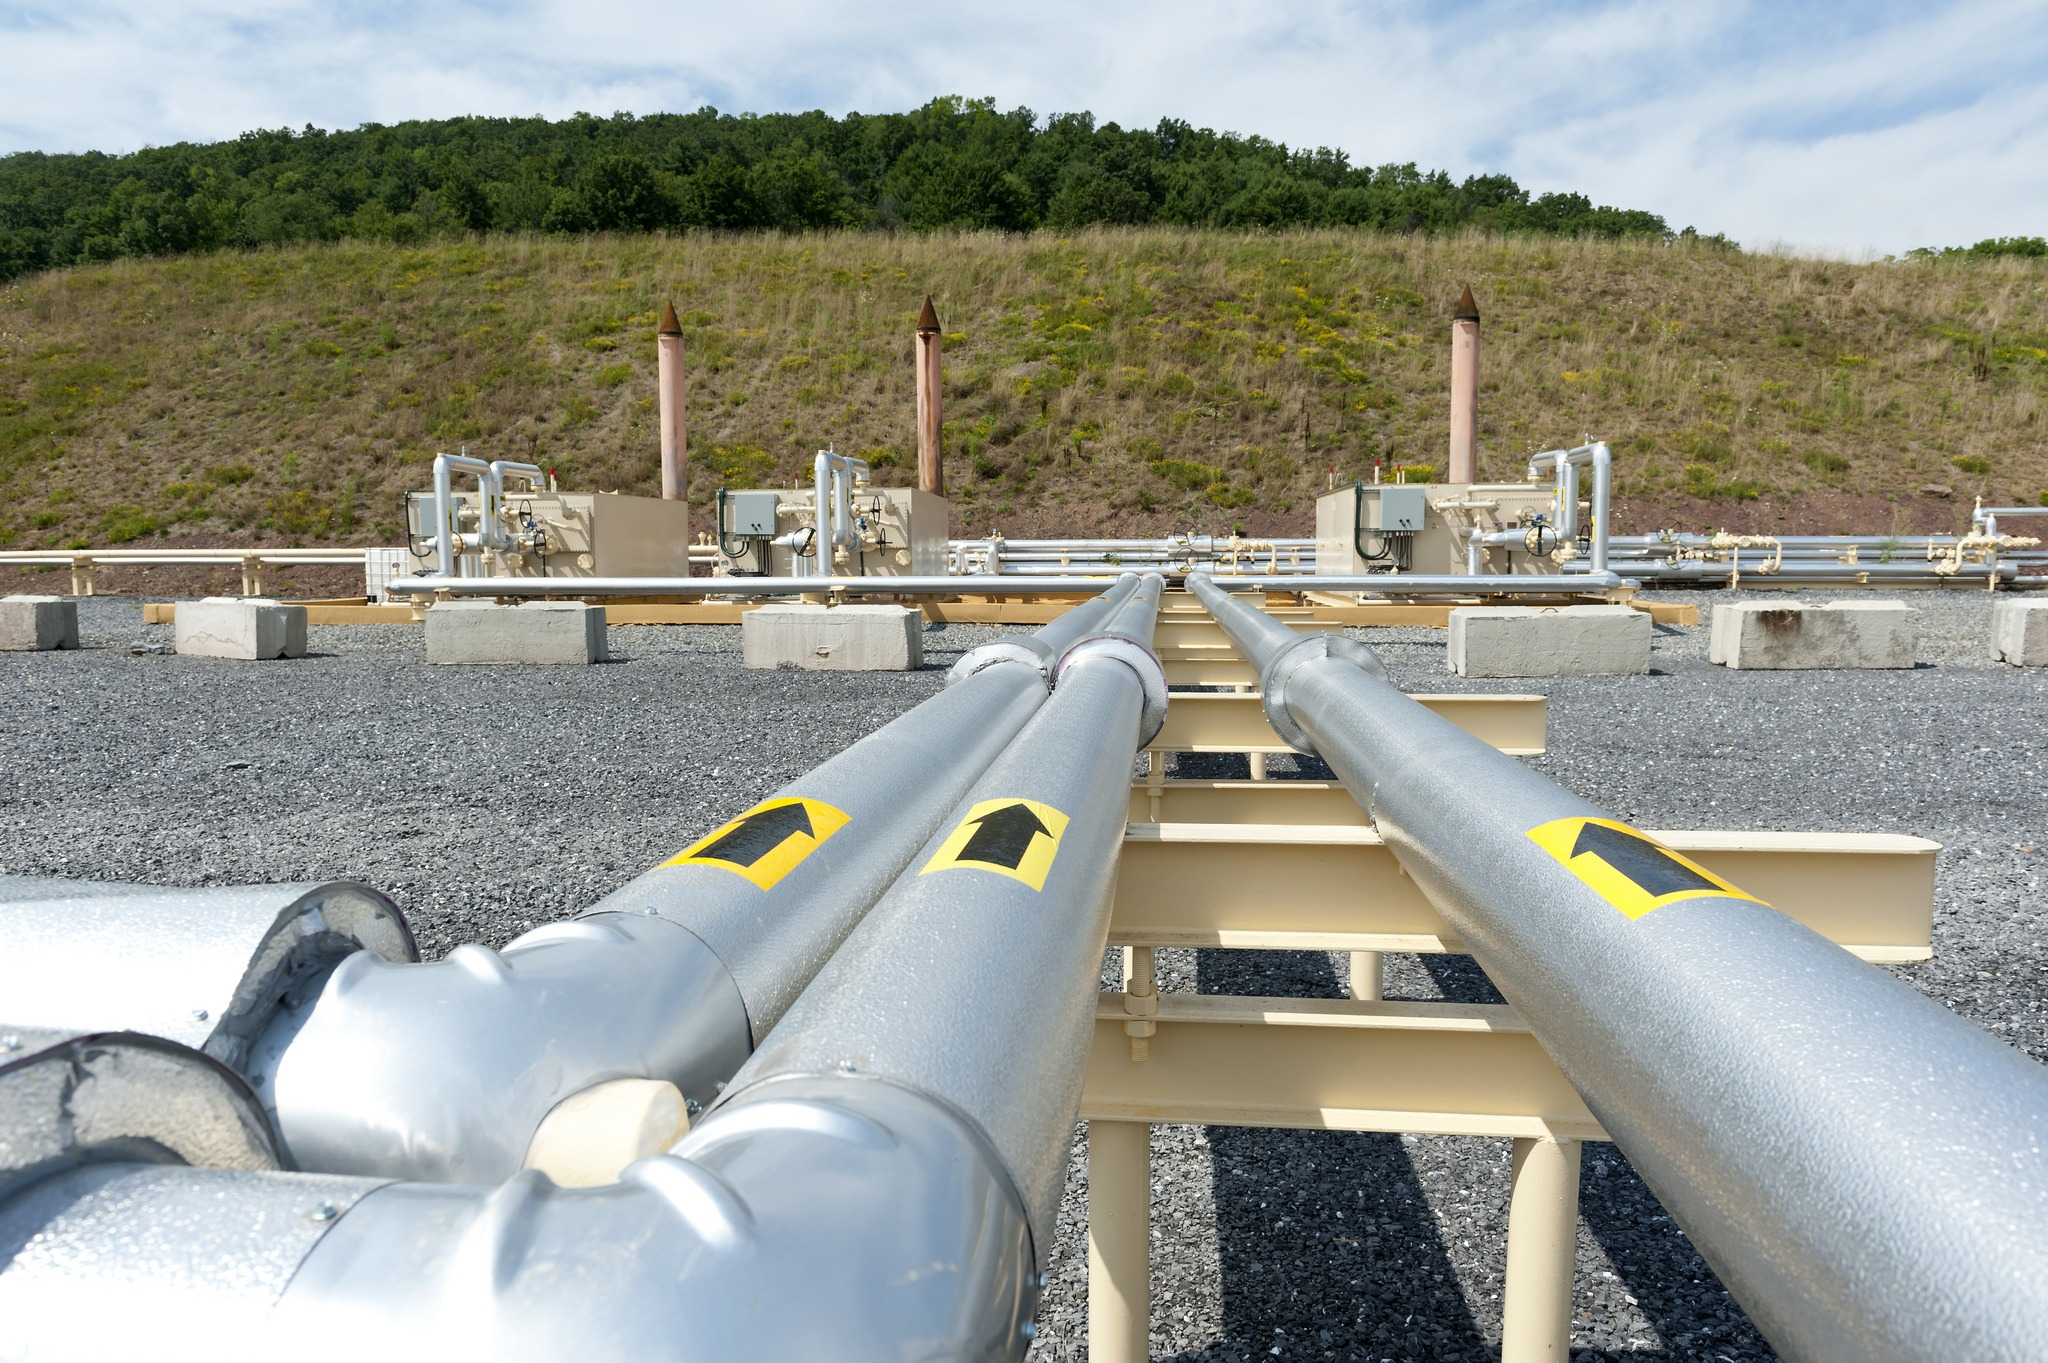 Fracking is on the rise in Pennsylvania. So are radon levels. Are the two connected?